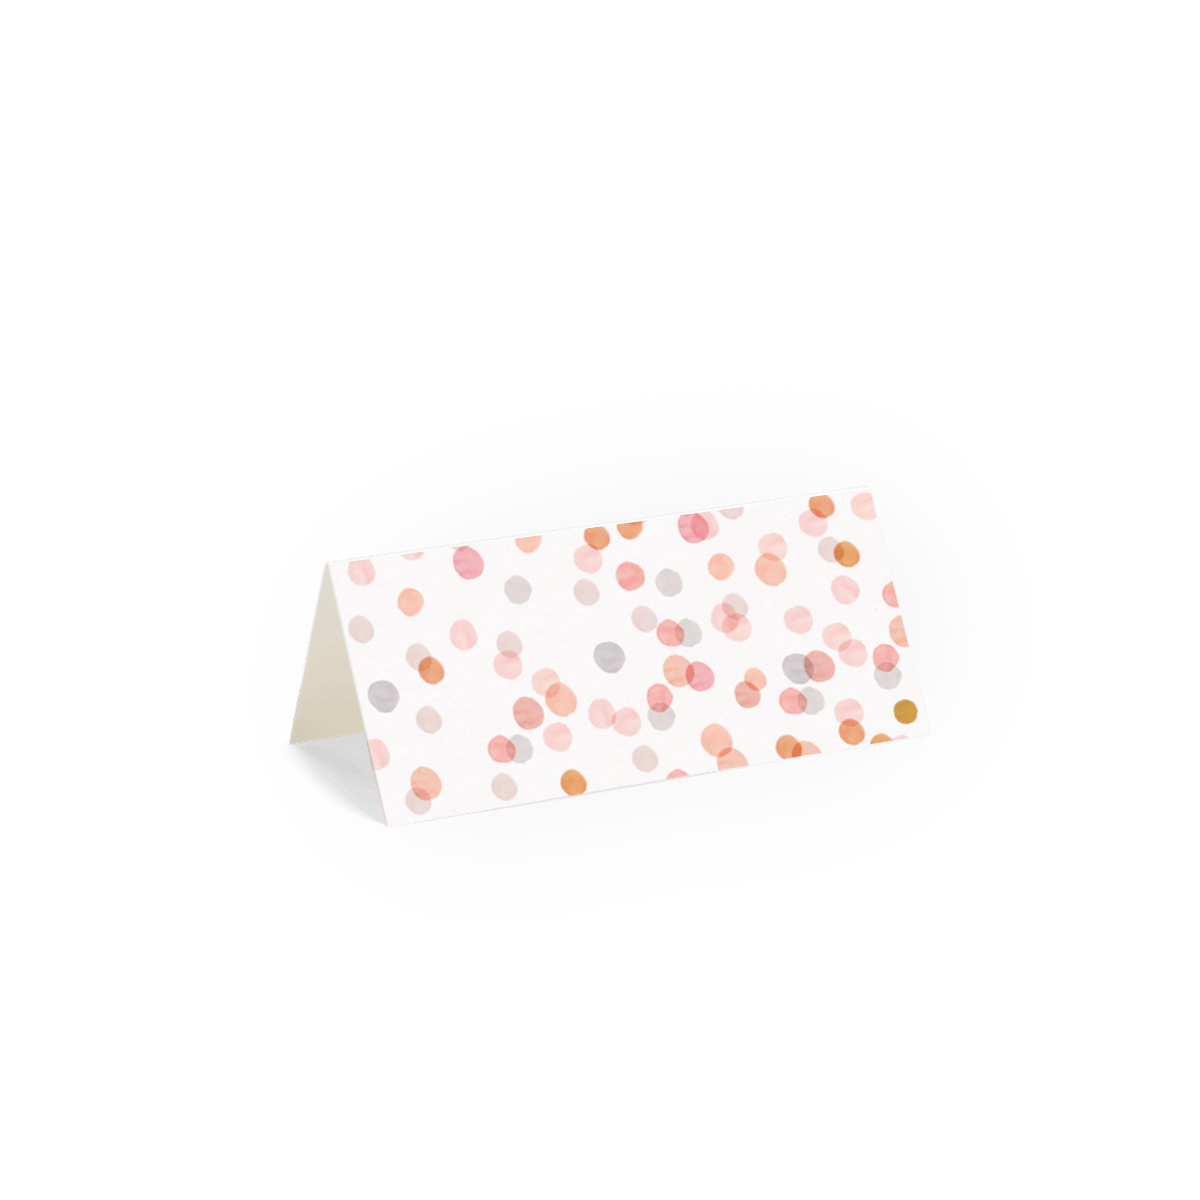 Https%3a%2f%2fwww.papier.com%2fproduct image%2f81885%2f15%2fblush confetti 19739 arriere 1561999225.png?ixlib=rb 1.1